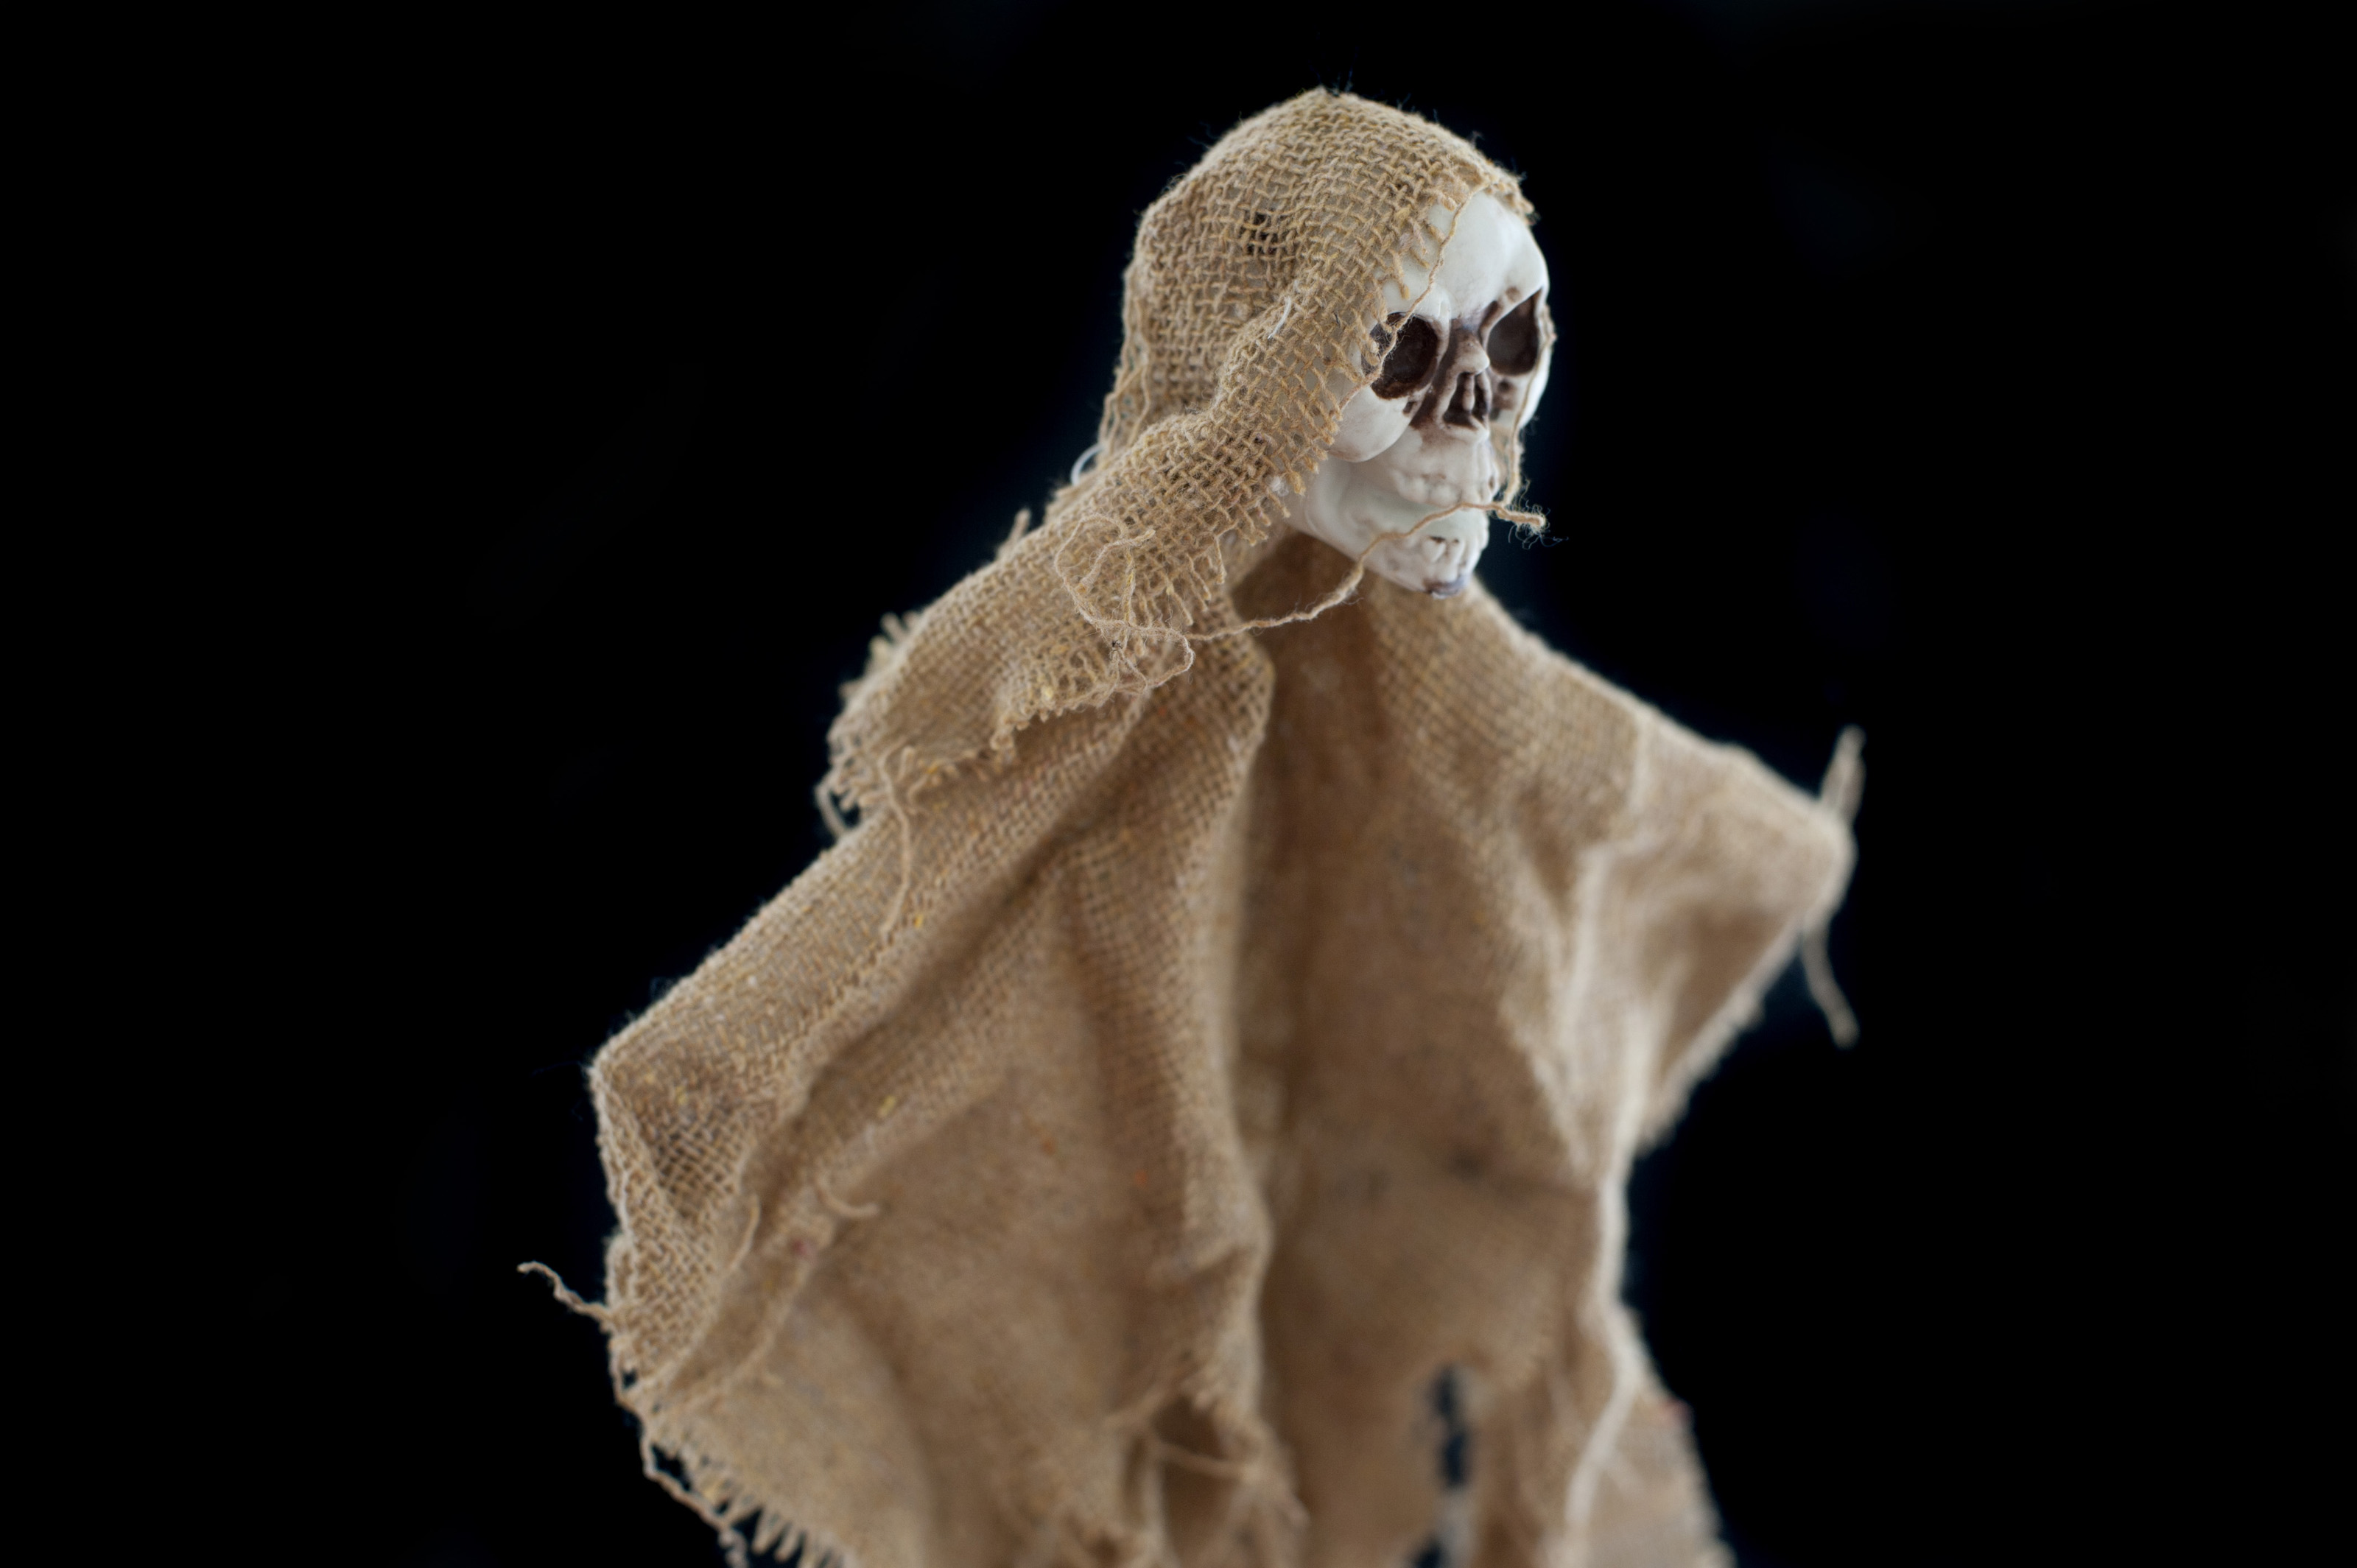 Spooky little doll made of burlap and skull over black background for concept about Halloween